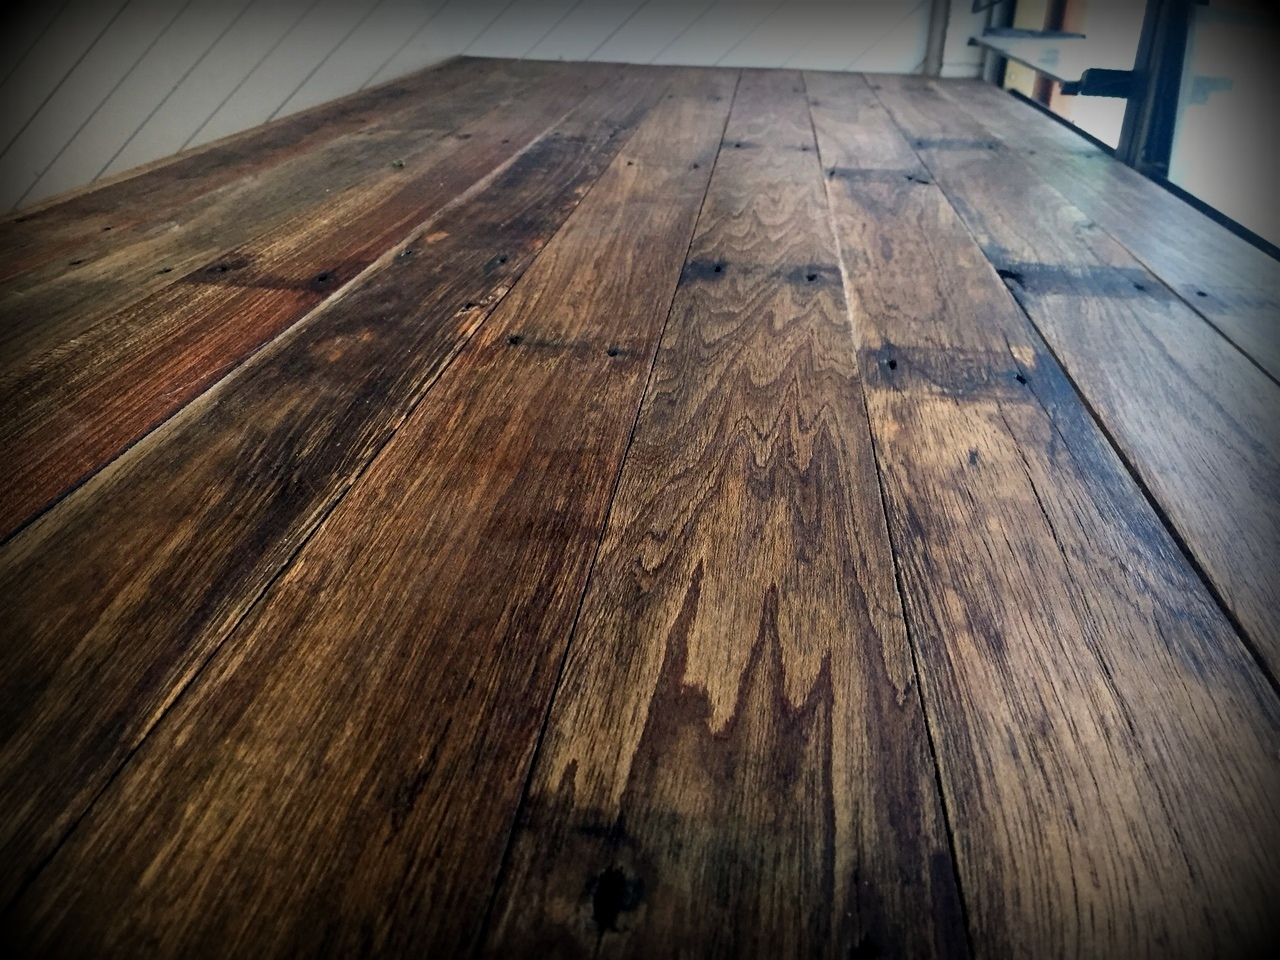 Timber Desk made with old floorboard